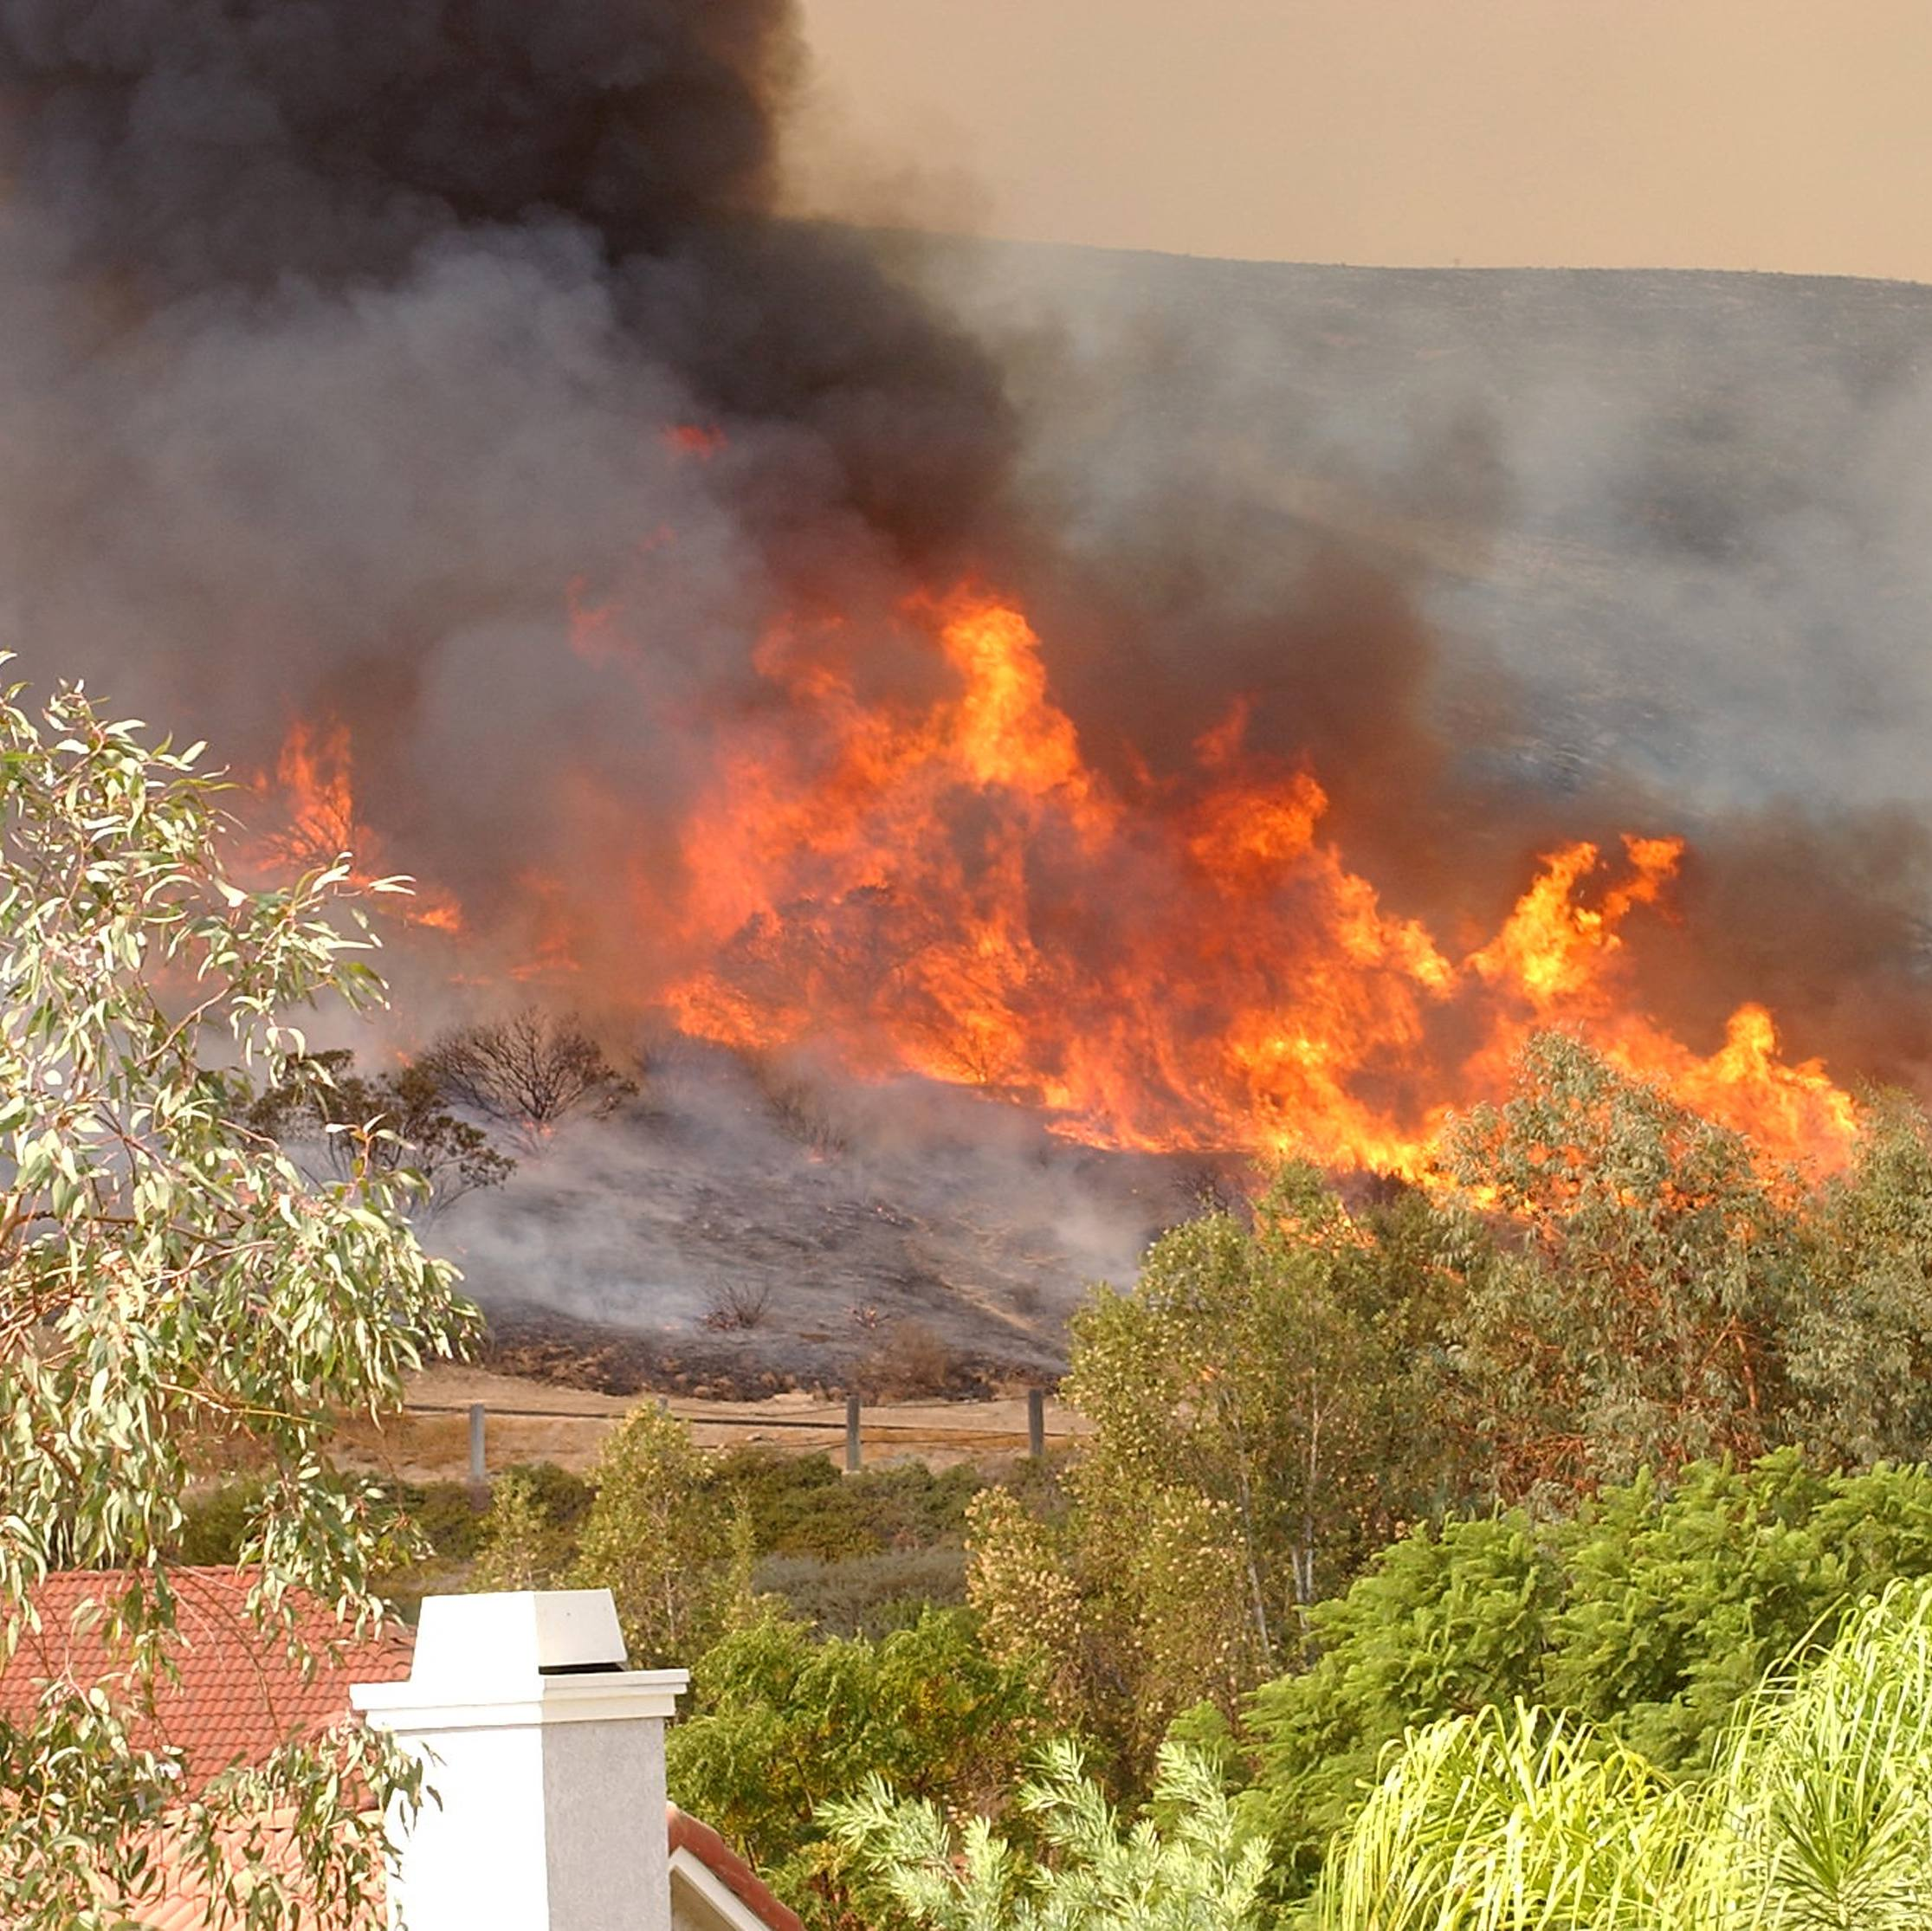 a California wild fire on a hillside near homes and trees, creating a lot of smoke